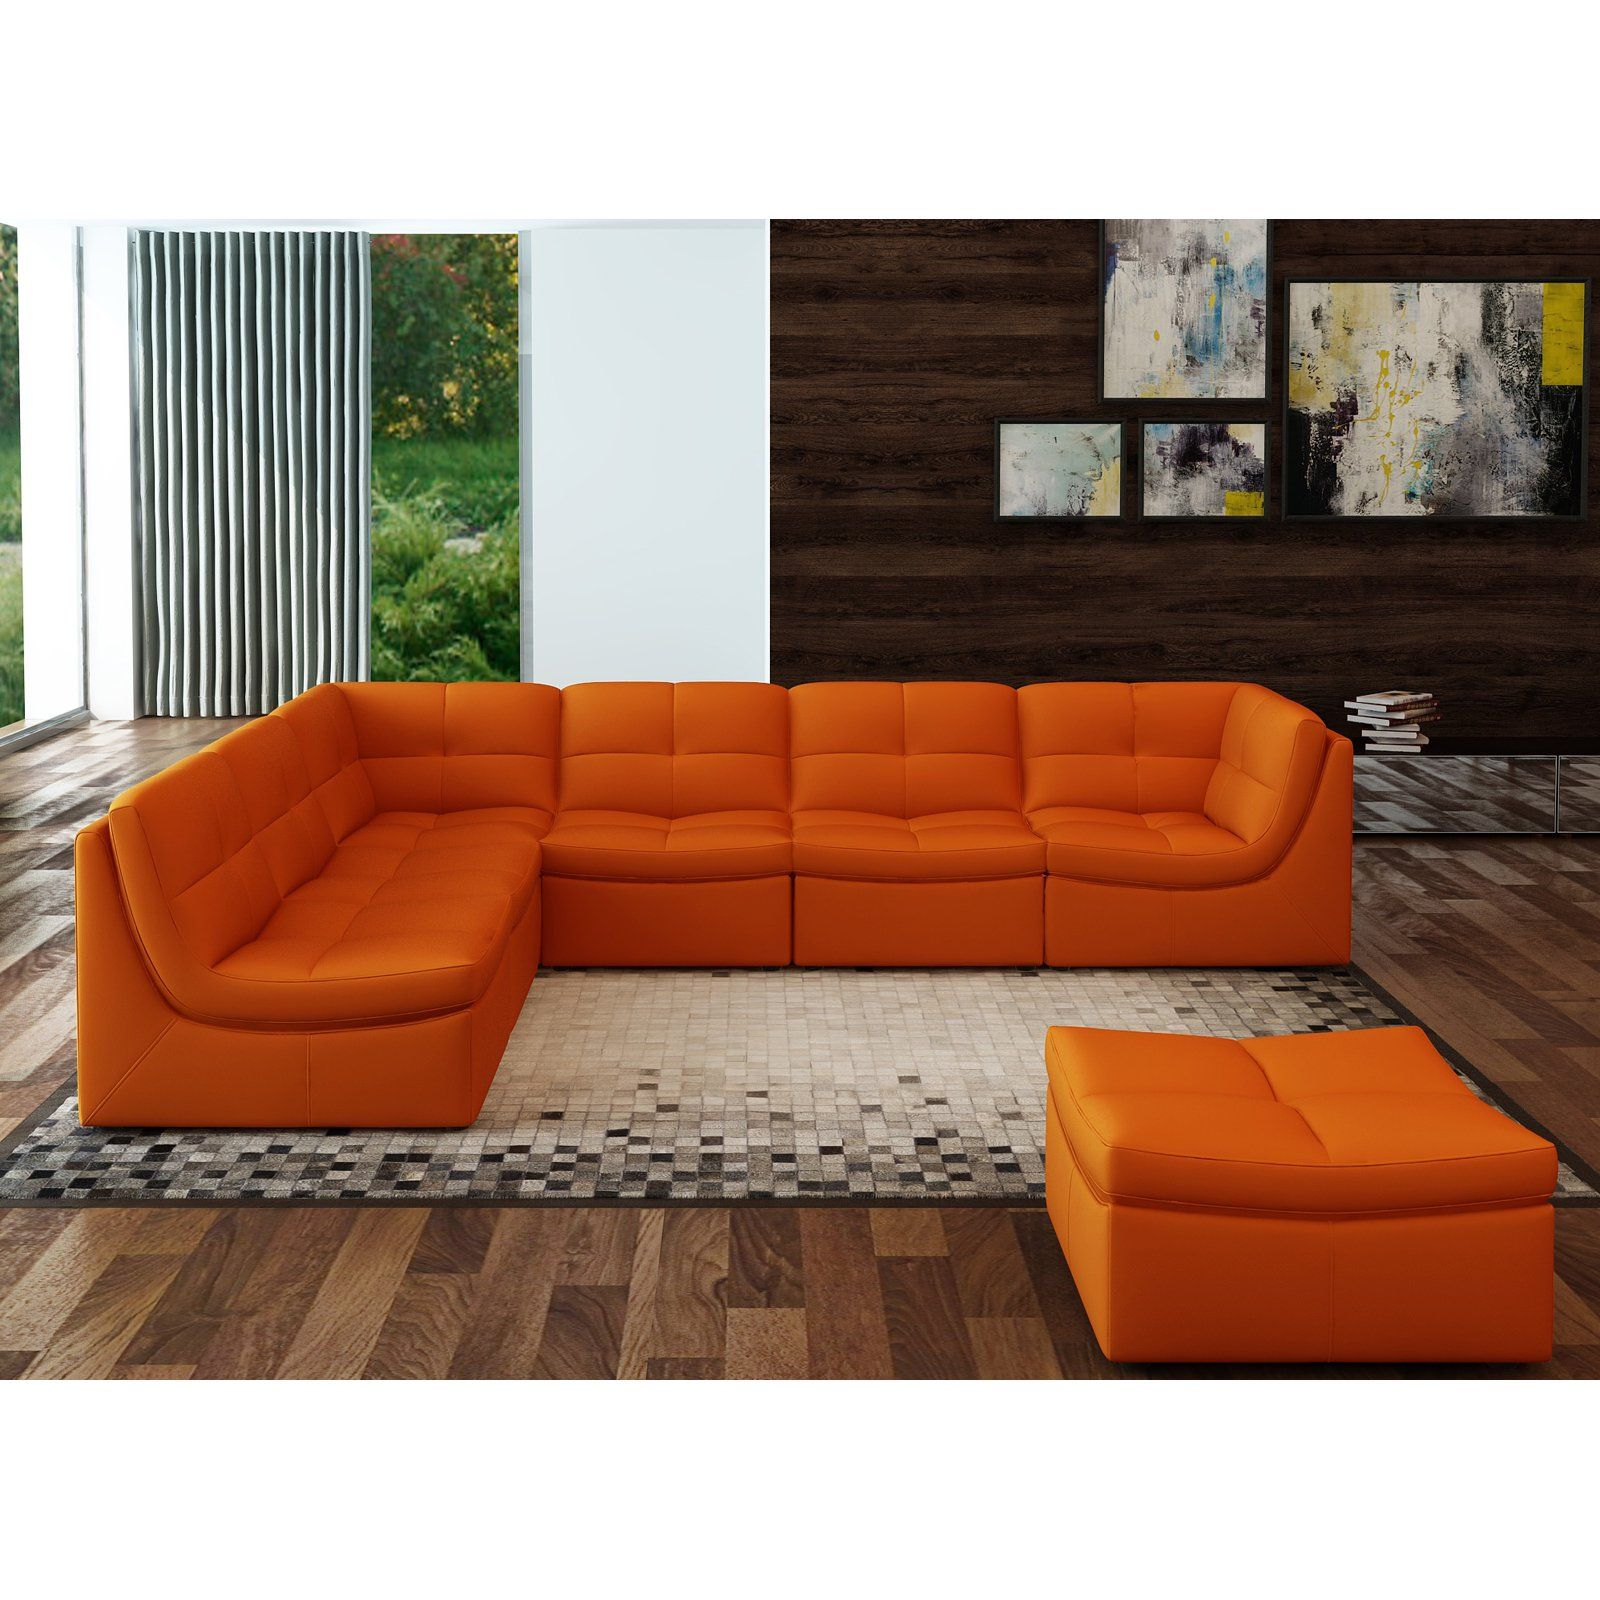 Best J M Furniture Lego 7 Piece Sectional Sofa Set Pumpkin In 400 x 300